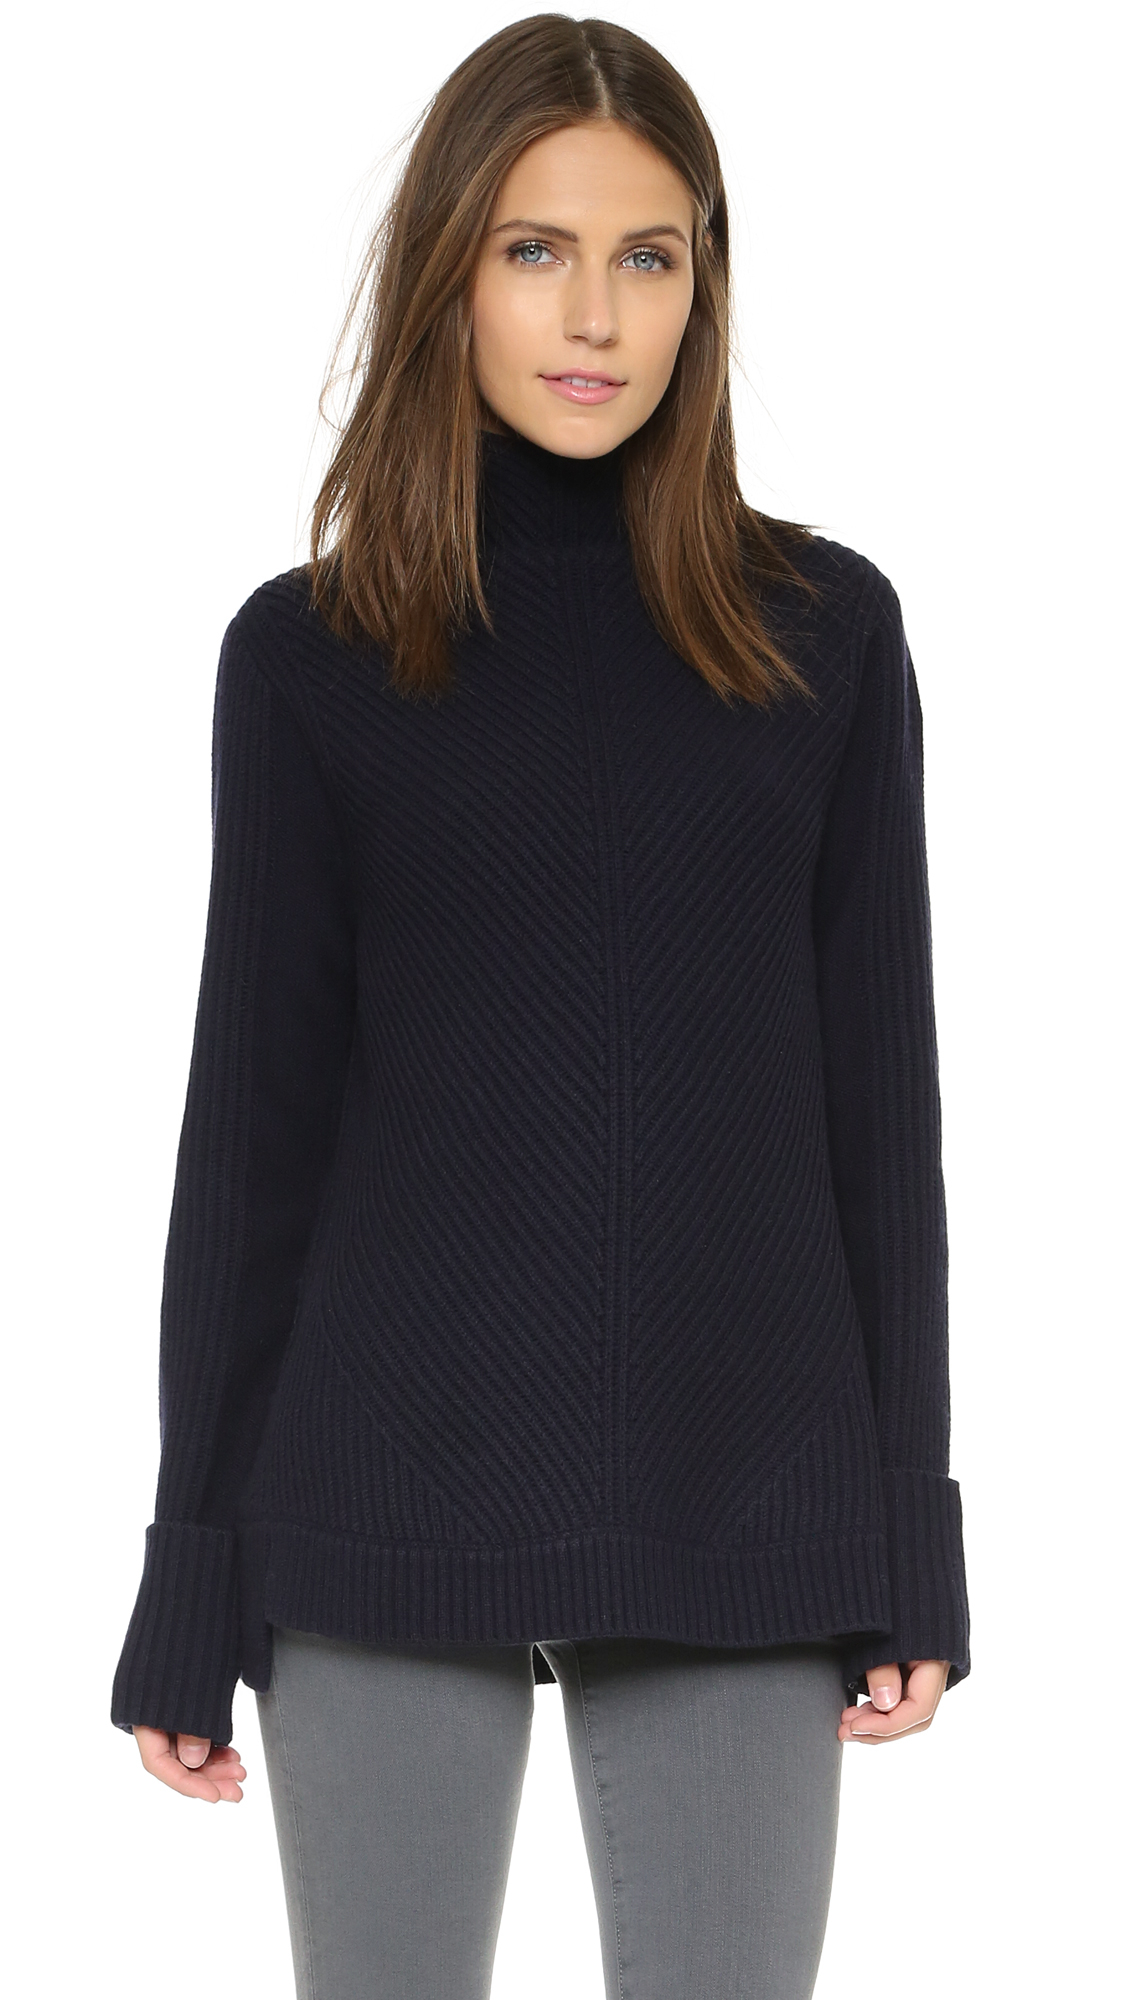 Vince Directional Rib Turtleneck Sweater - Coastal in Black | Lyst